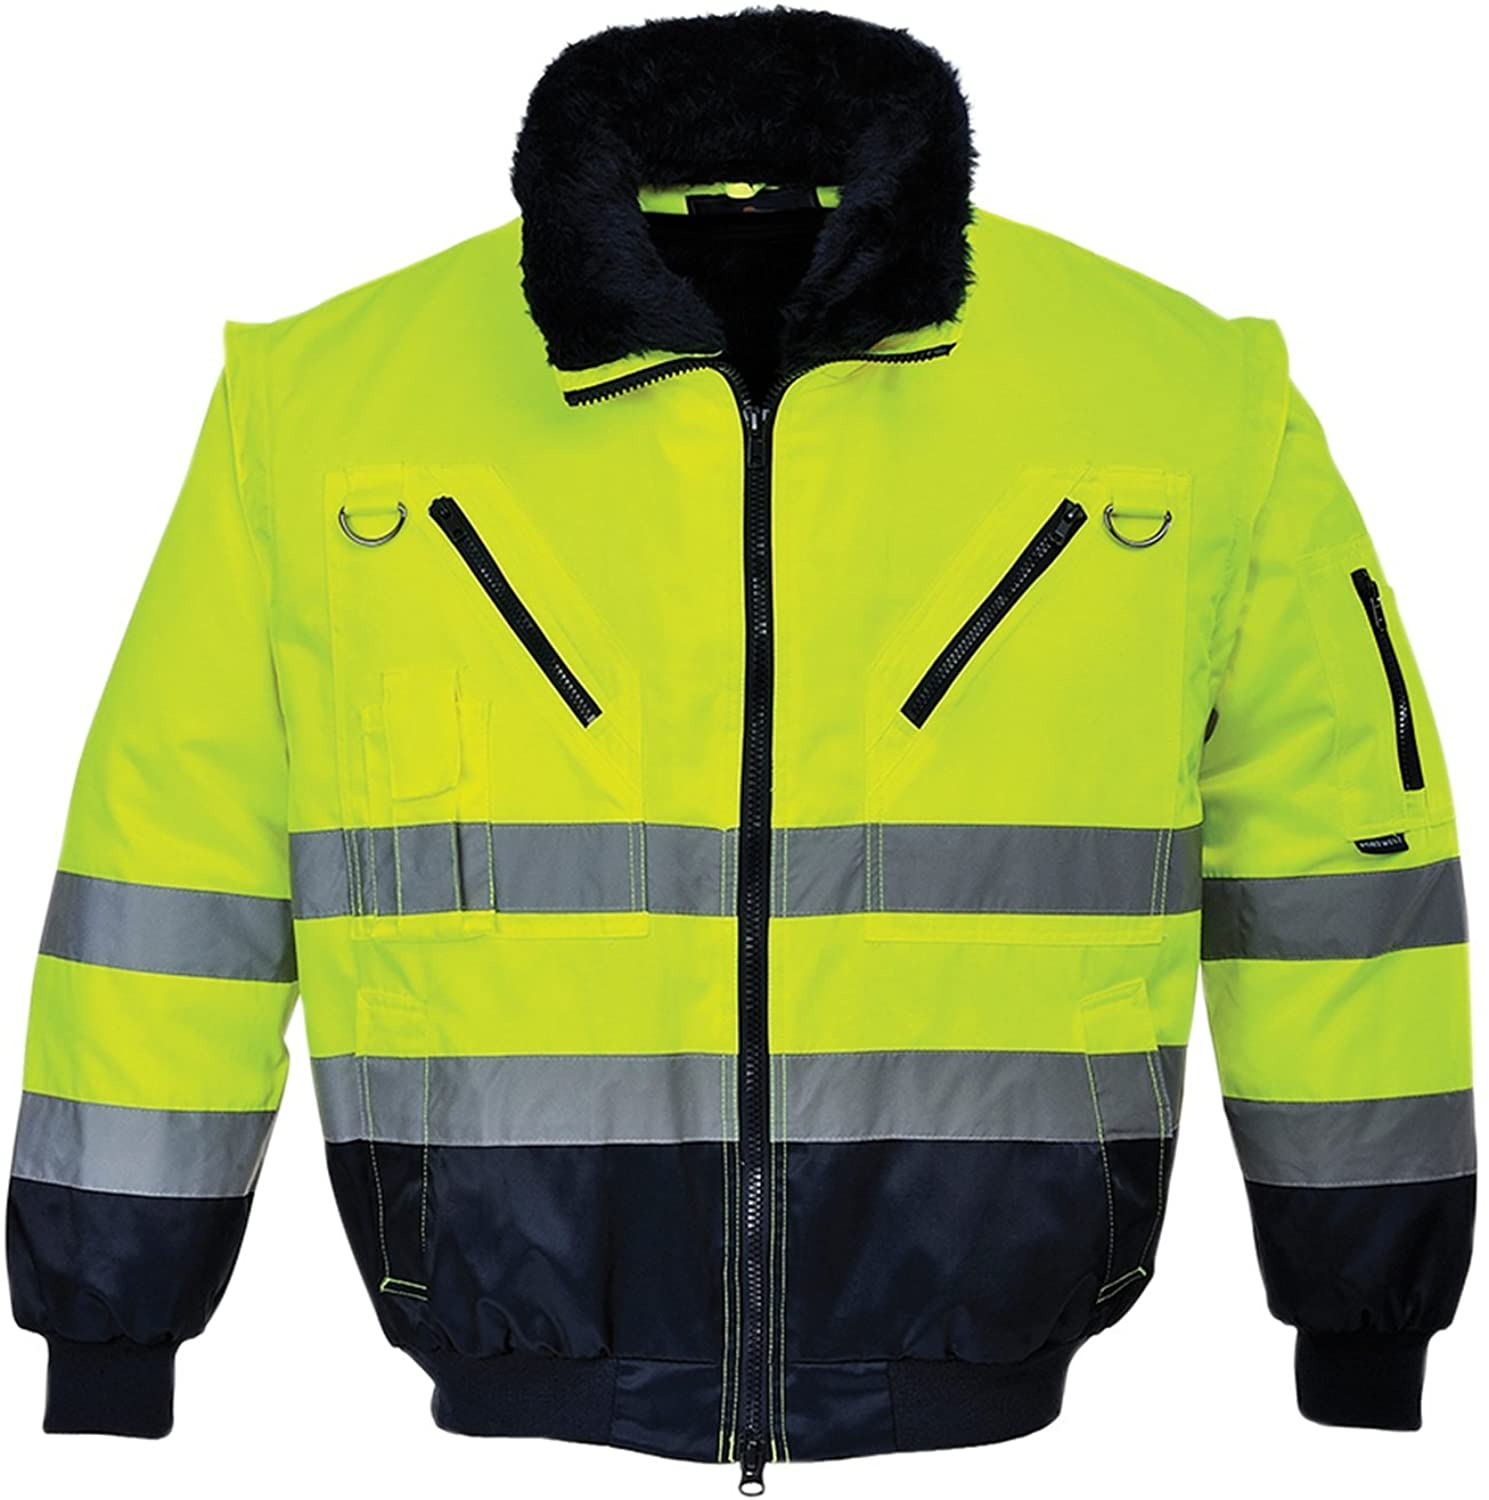 Portwest Workwear Mens Hi-Vis Pilot Jacket